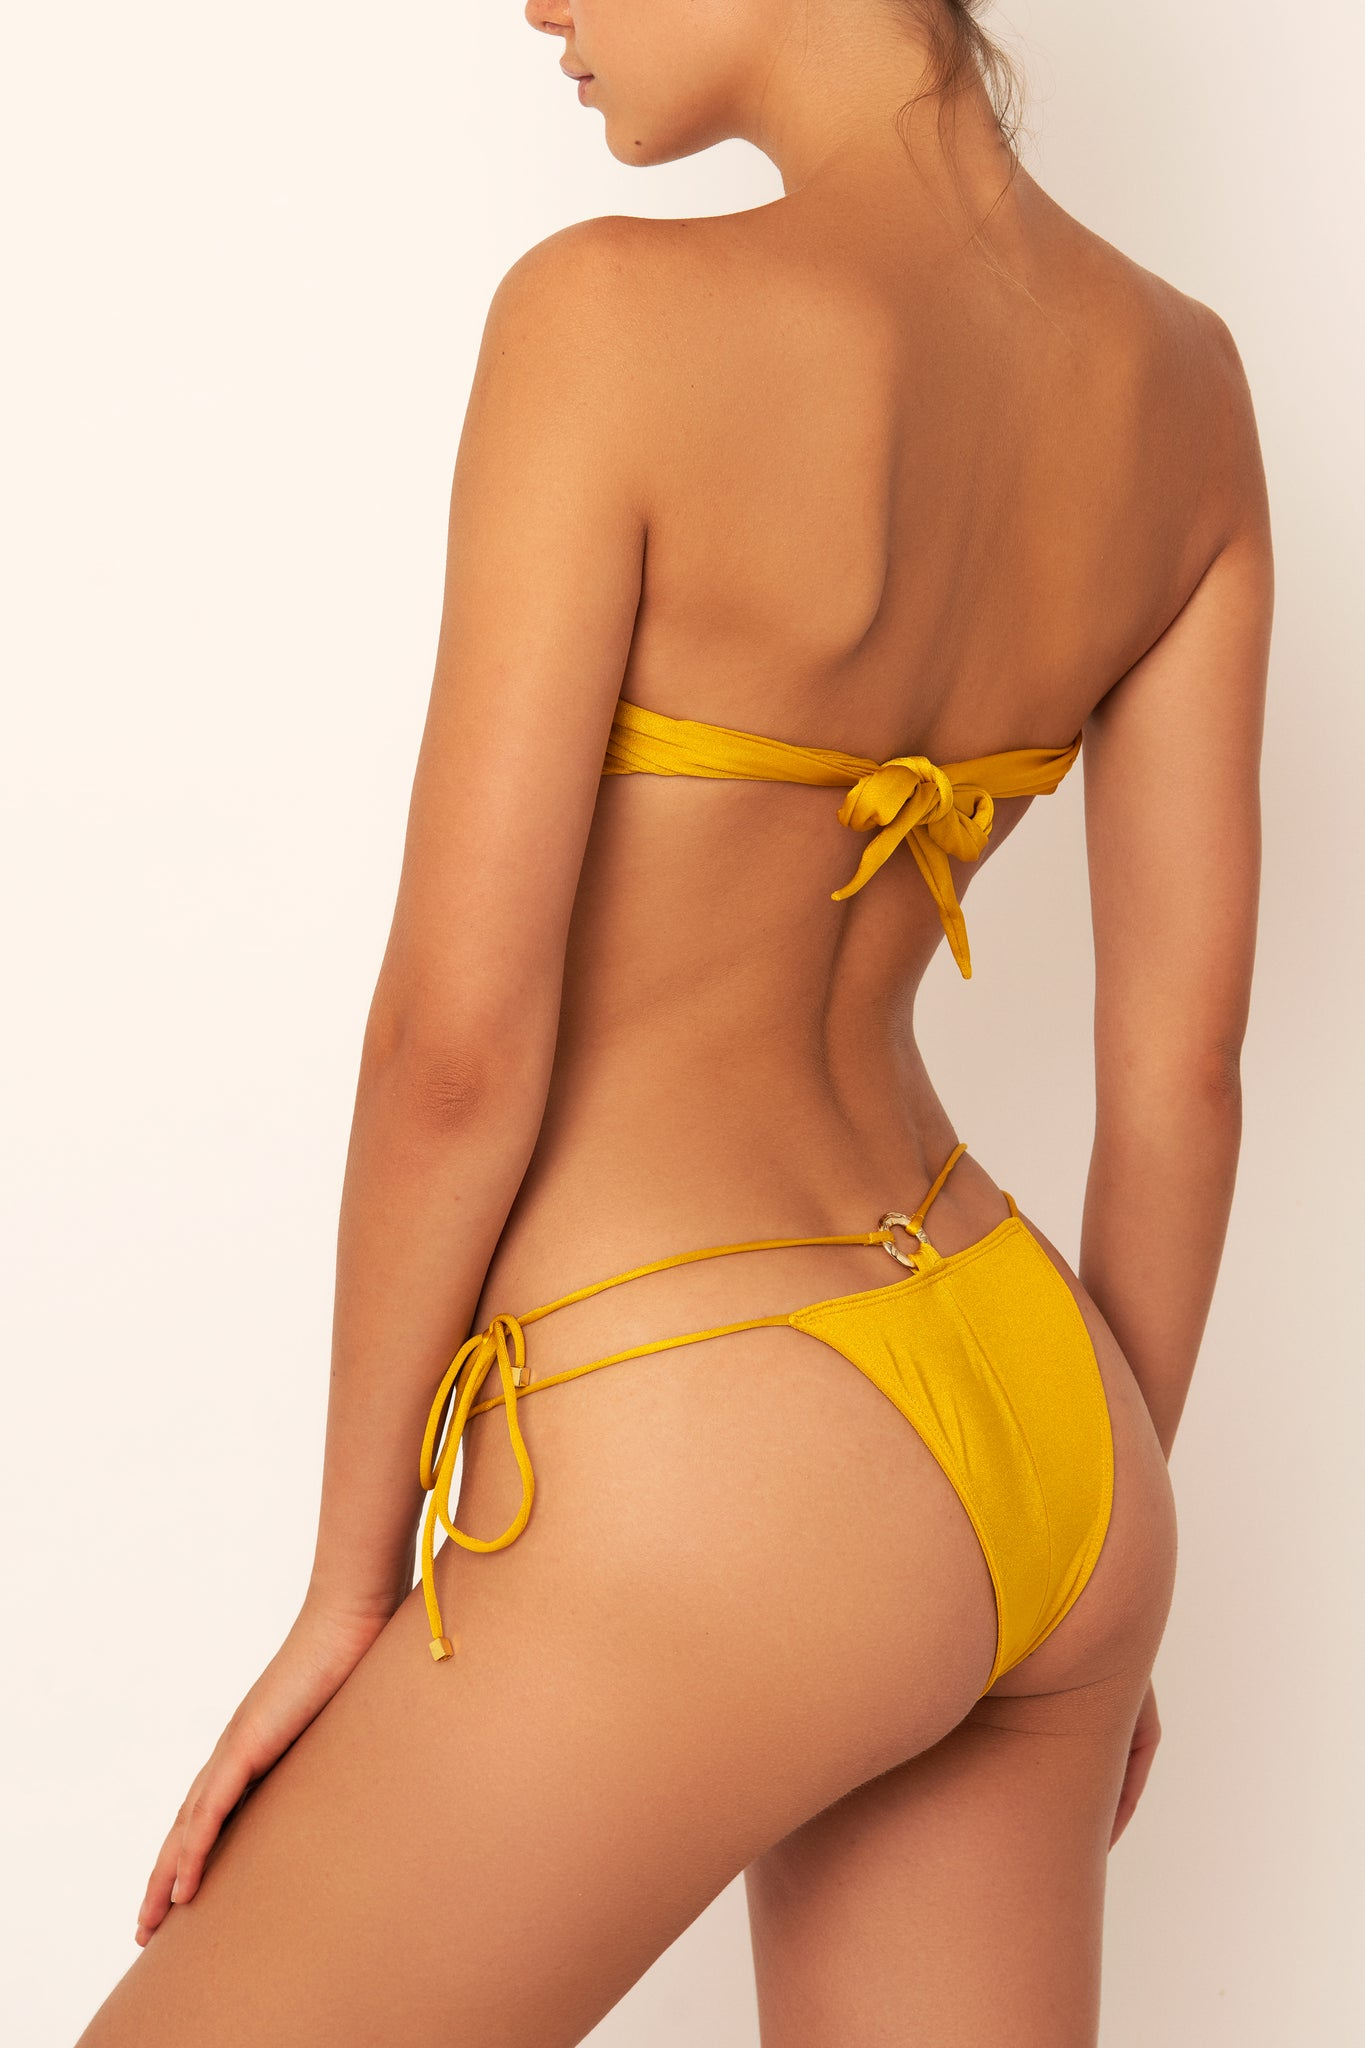 bikini bottom in yellow mustard on body side view on site